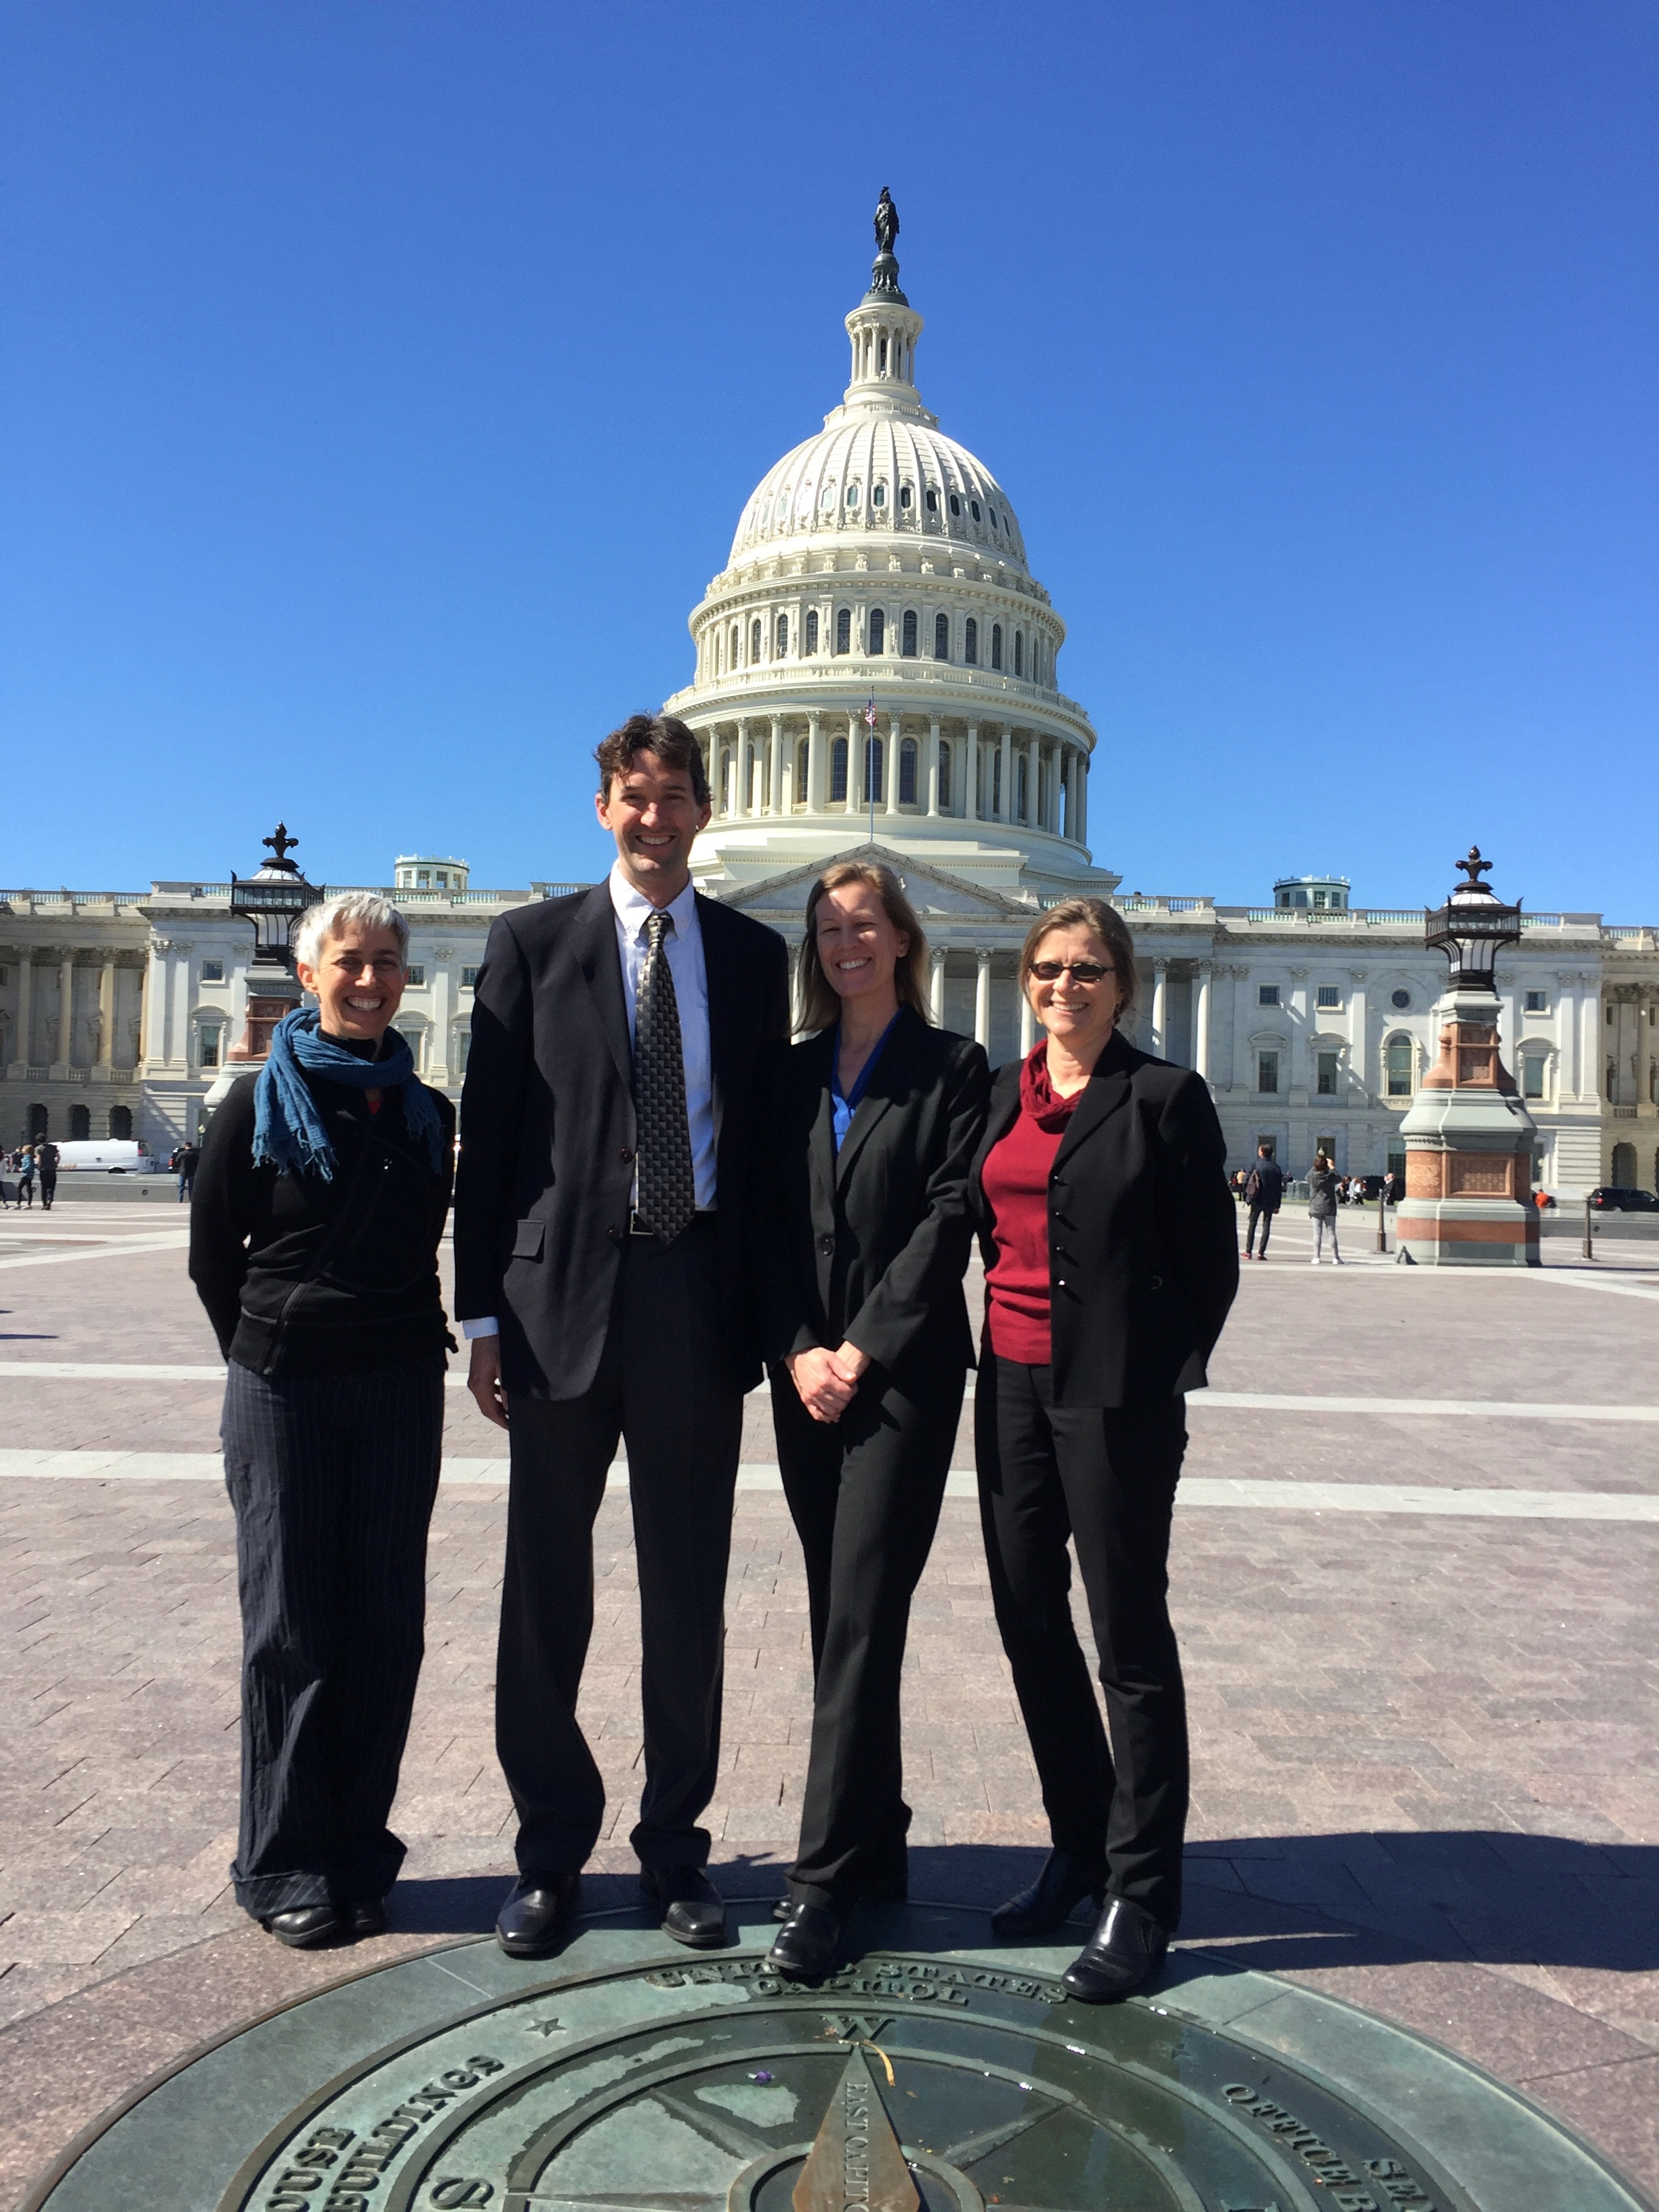 Our advocacy group included, pictured from left to right, Amy Zanne (George Washington University), Steve Allison (UC Irvine), Jennifer Funk (Chapman University), and Jutta Burger (Irvine Ranch Conservancy).